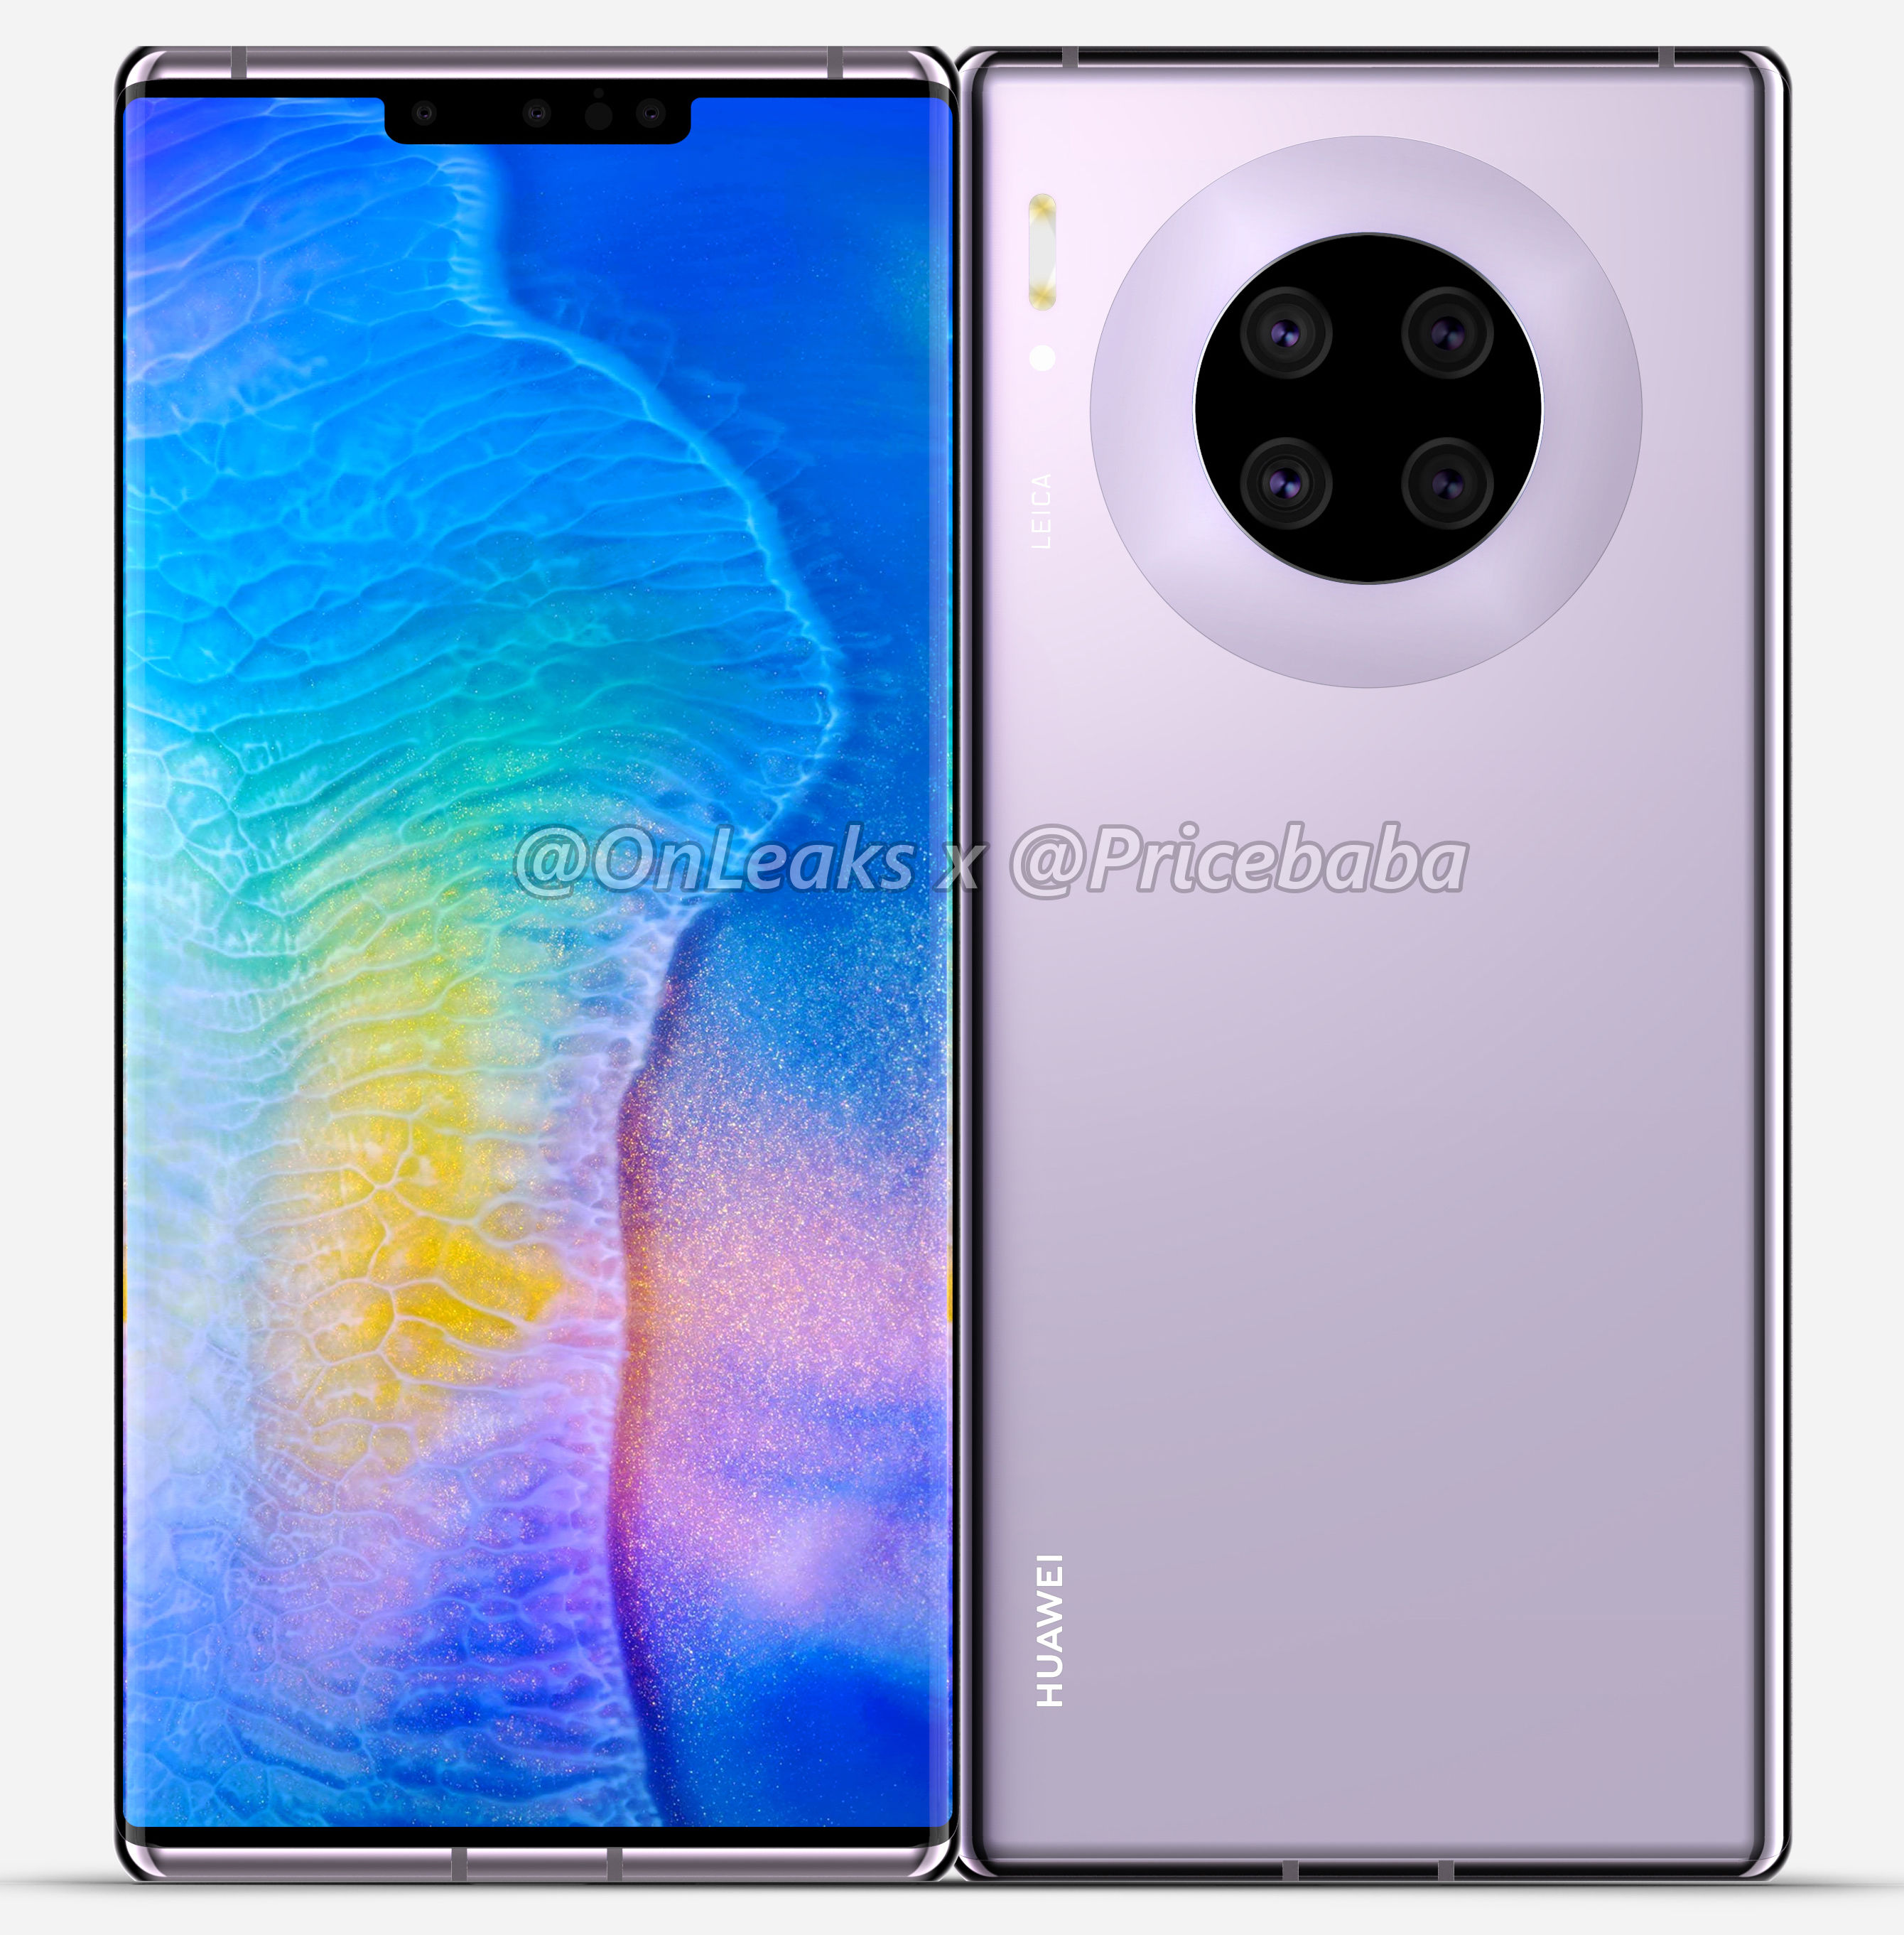 Exclusive: Huawei Mate 30 Pro renders reveal circular quad